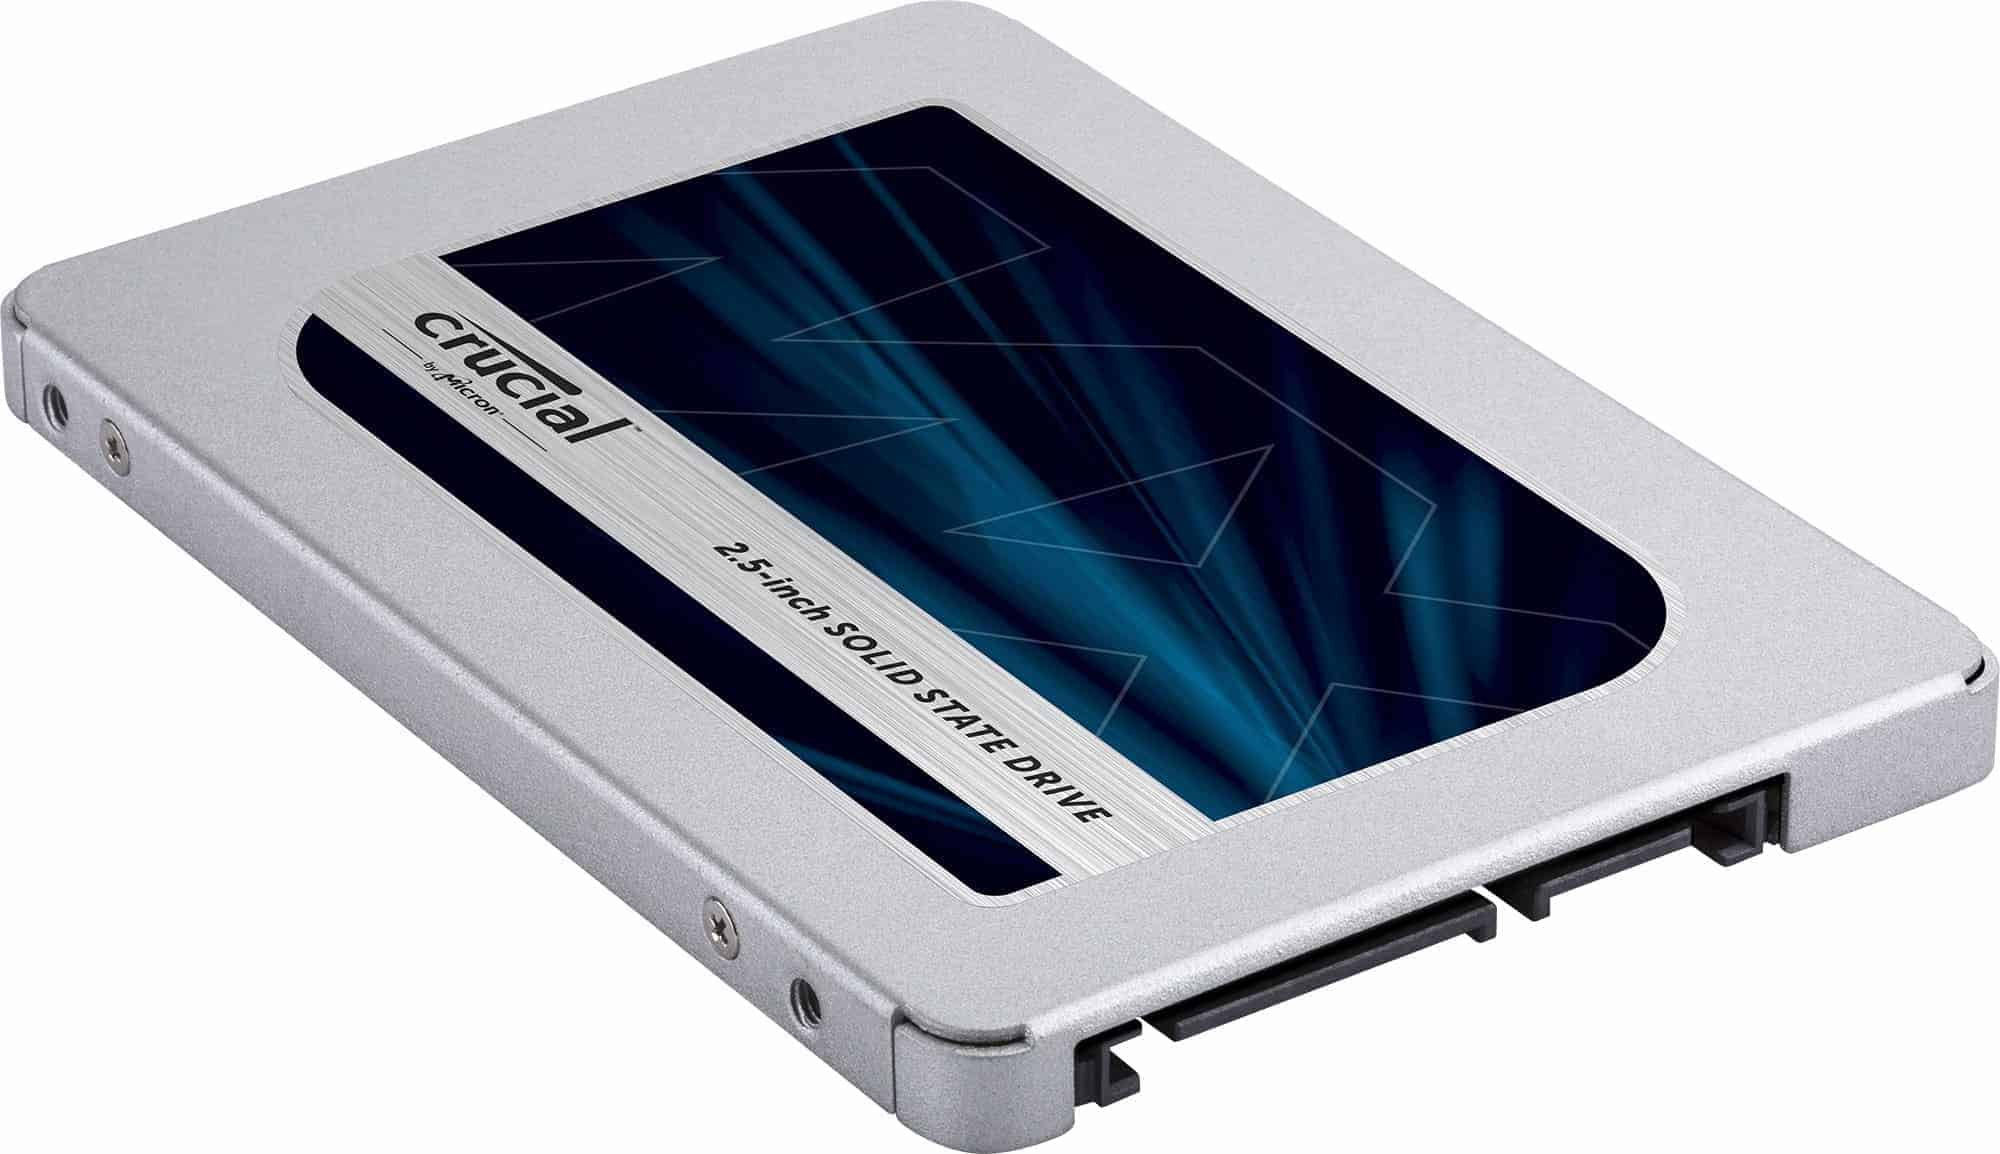 crucial-mx500-2-5inch-product-dynamic-1-image-copy Crucial Launches The MX500 SSD At CES 2018